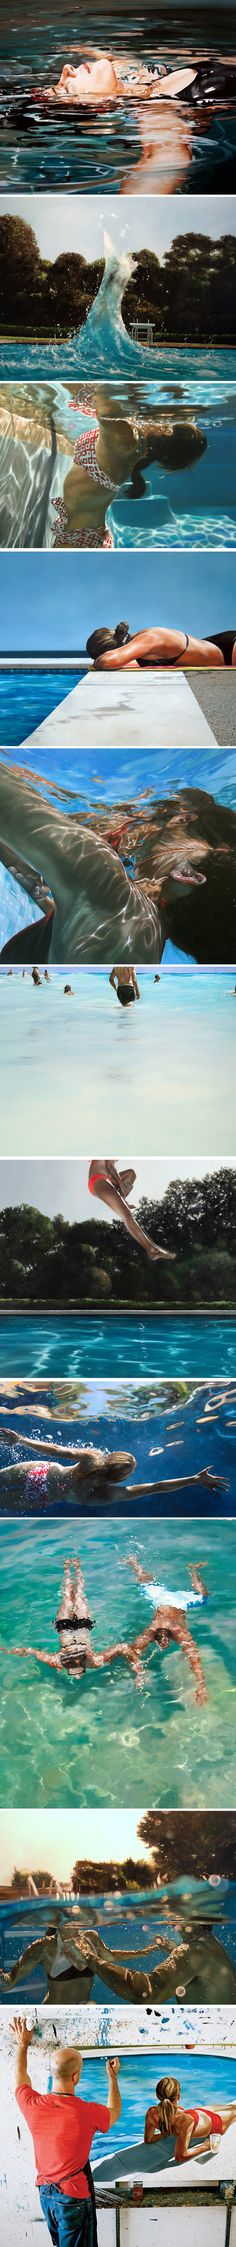 Hyper-Realistic Paintings by Eric Zener https://www.facebook.com/GrowingsNotDrawings